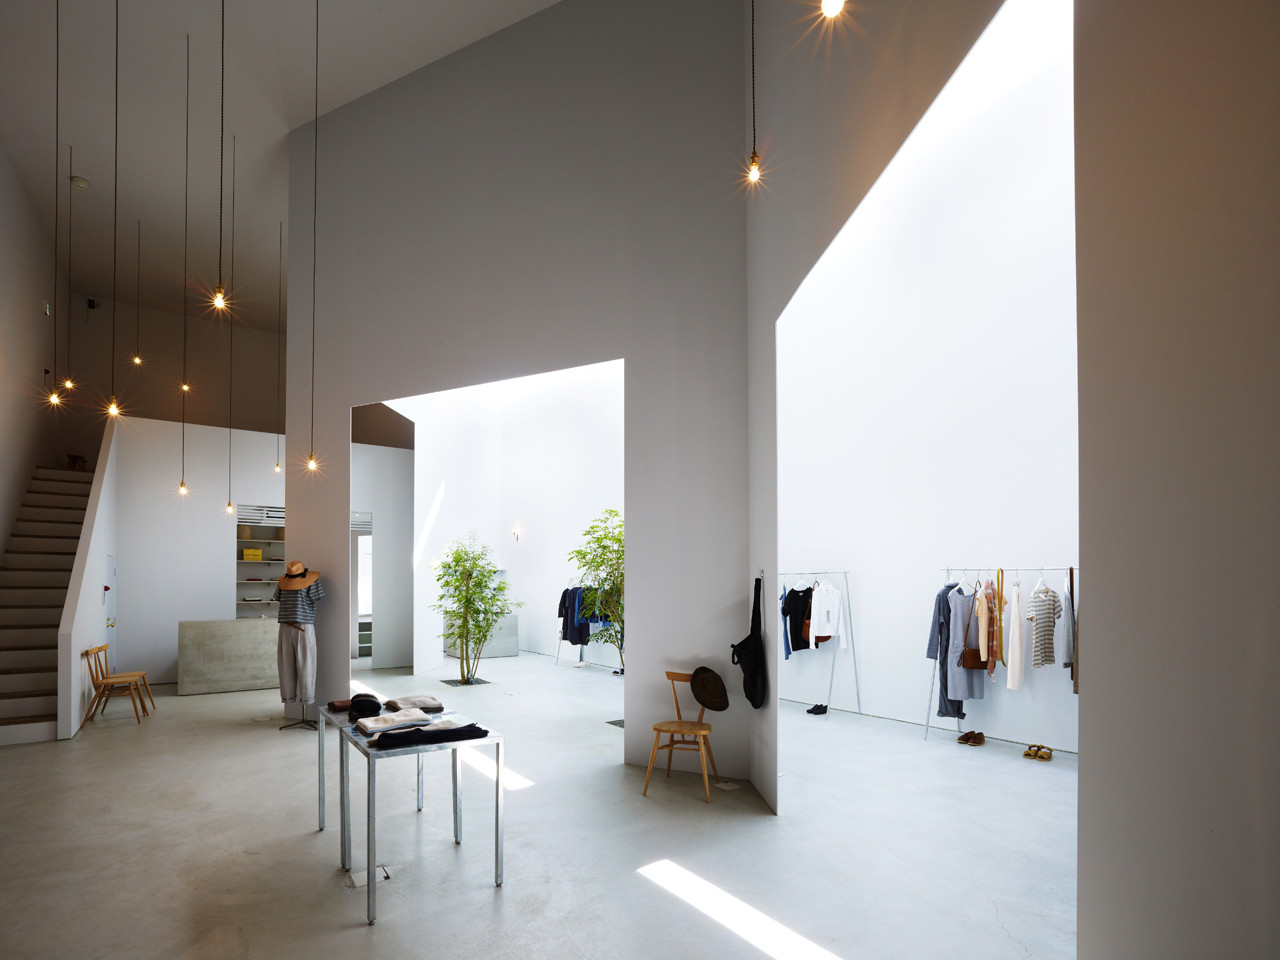 Tienda 52 suppose design office archdaily m xico for Office design archdaily